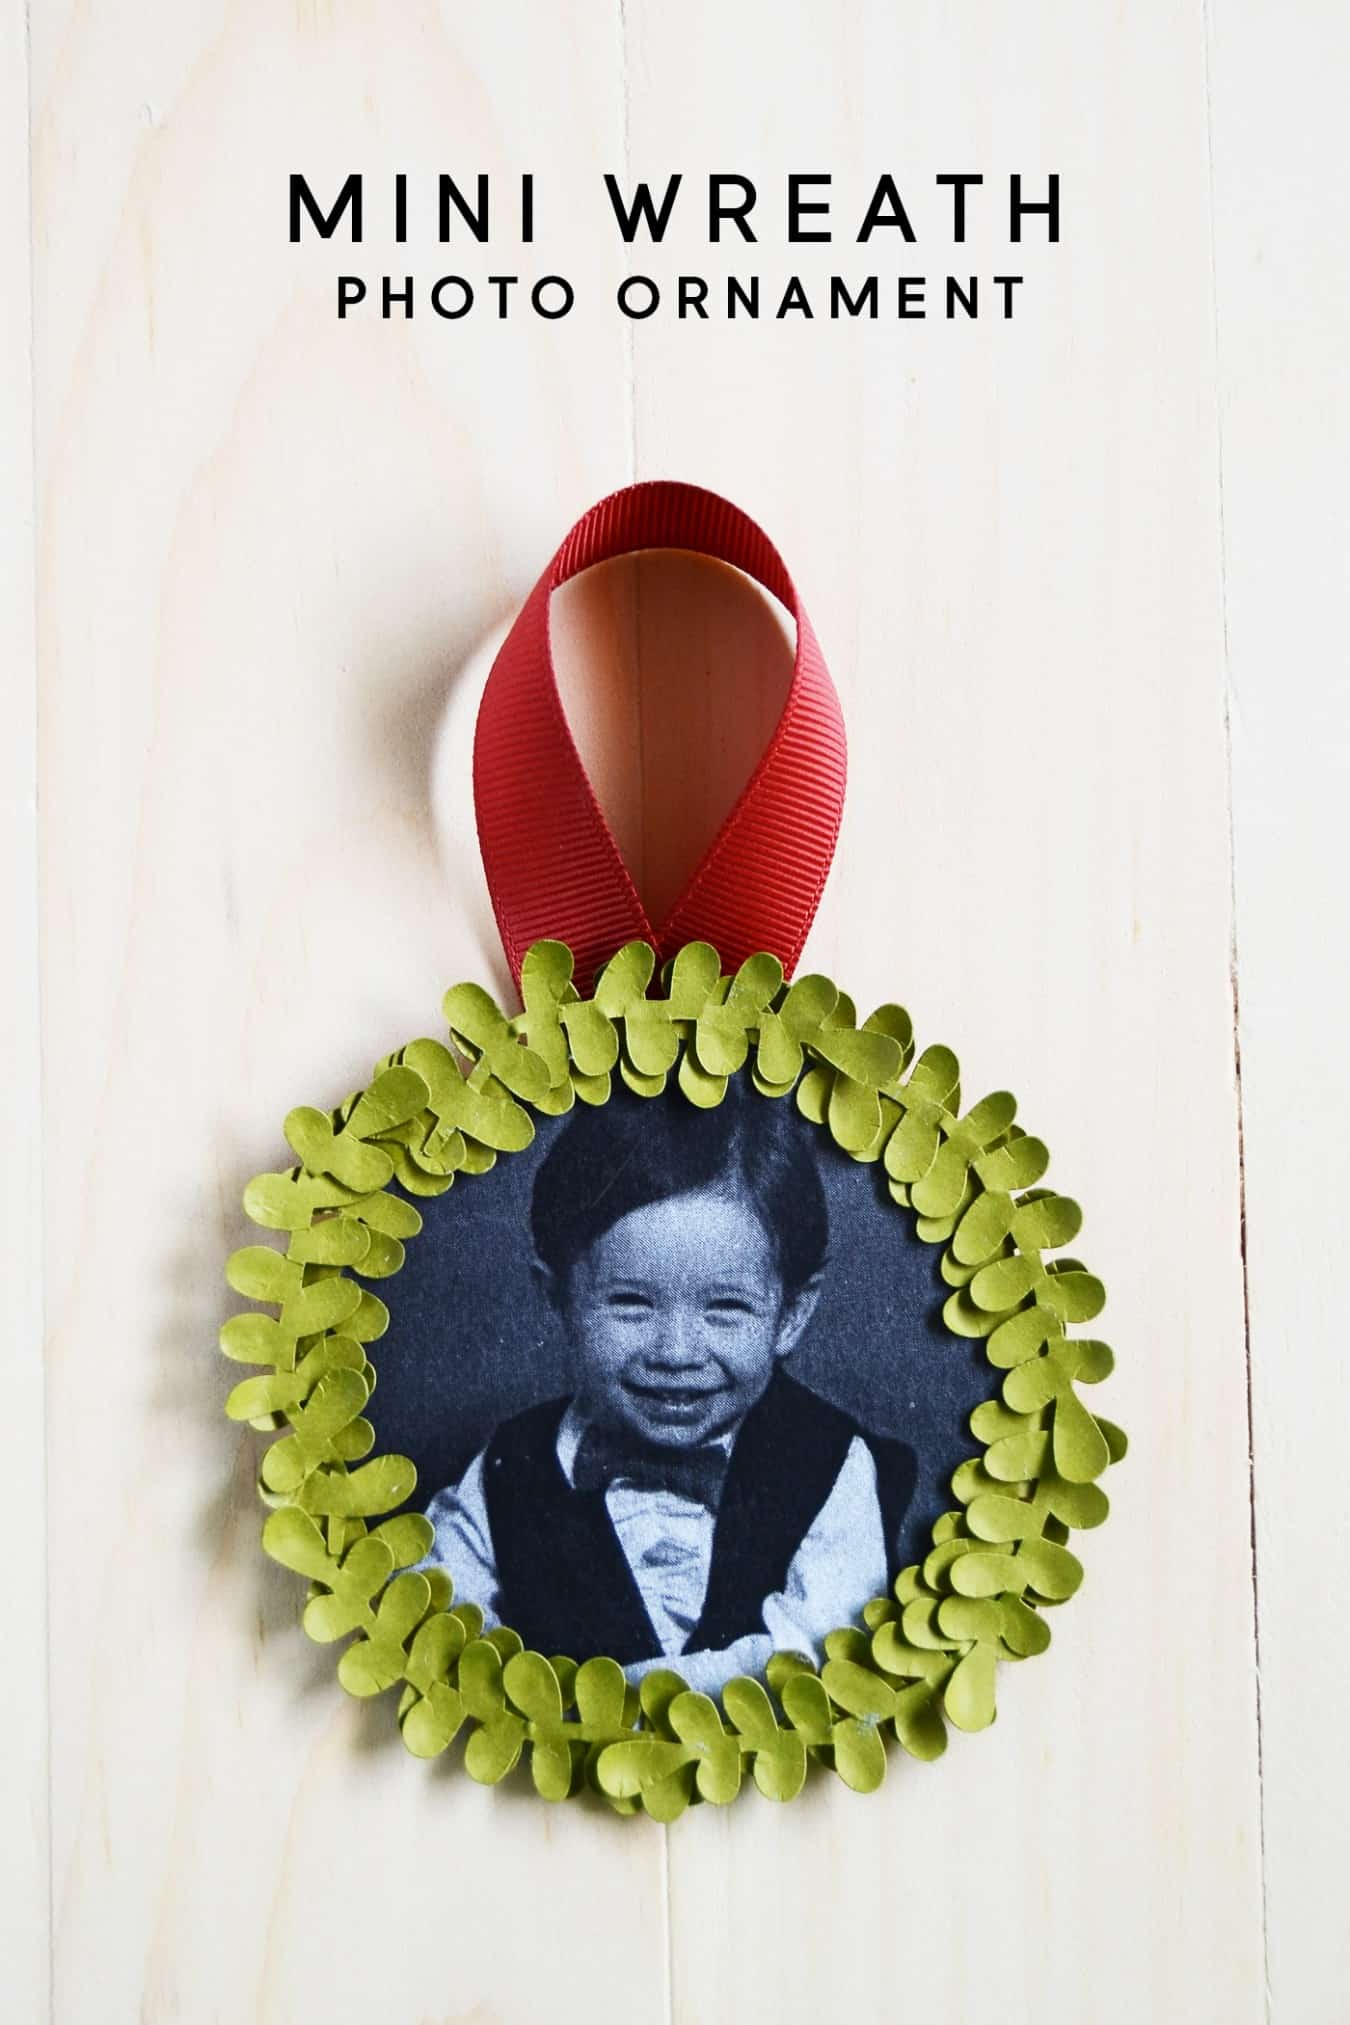 Mini Wreath Photo Ornament Perfect for Your Tree